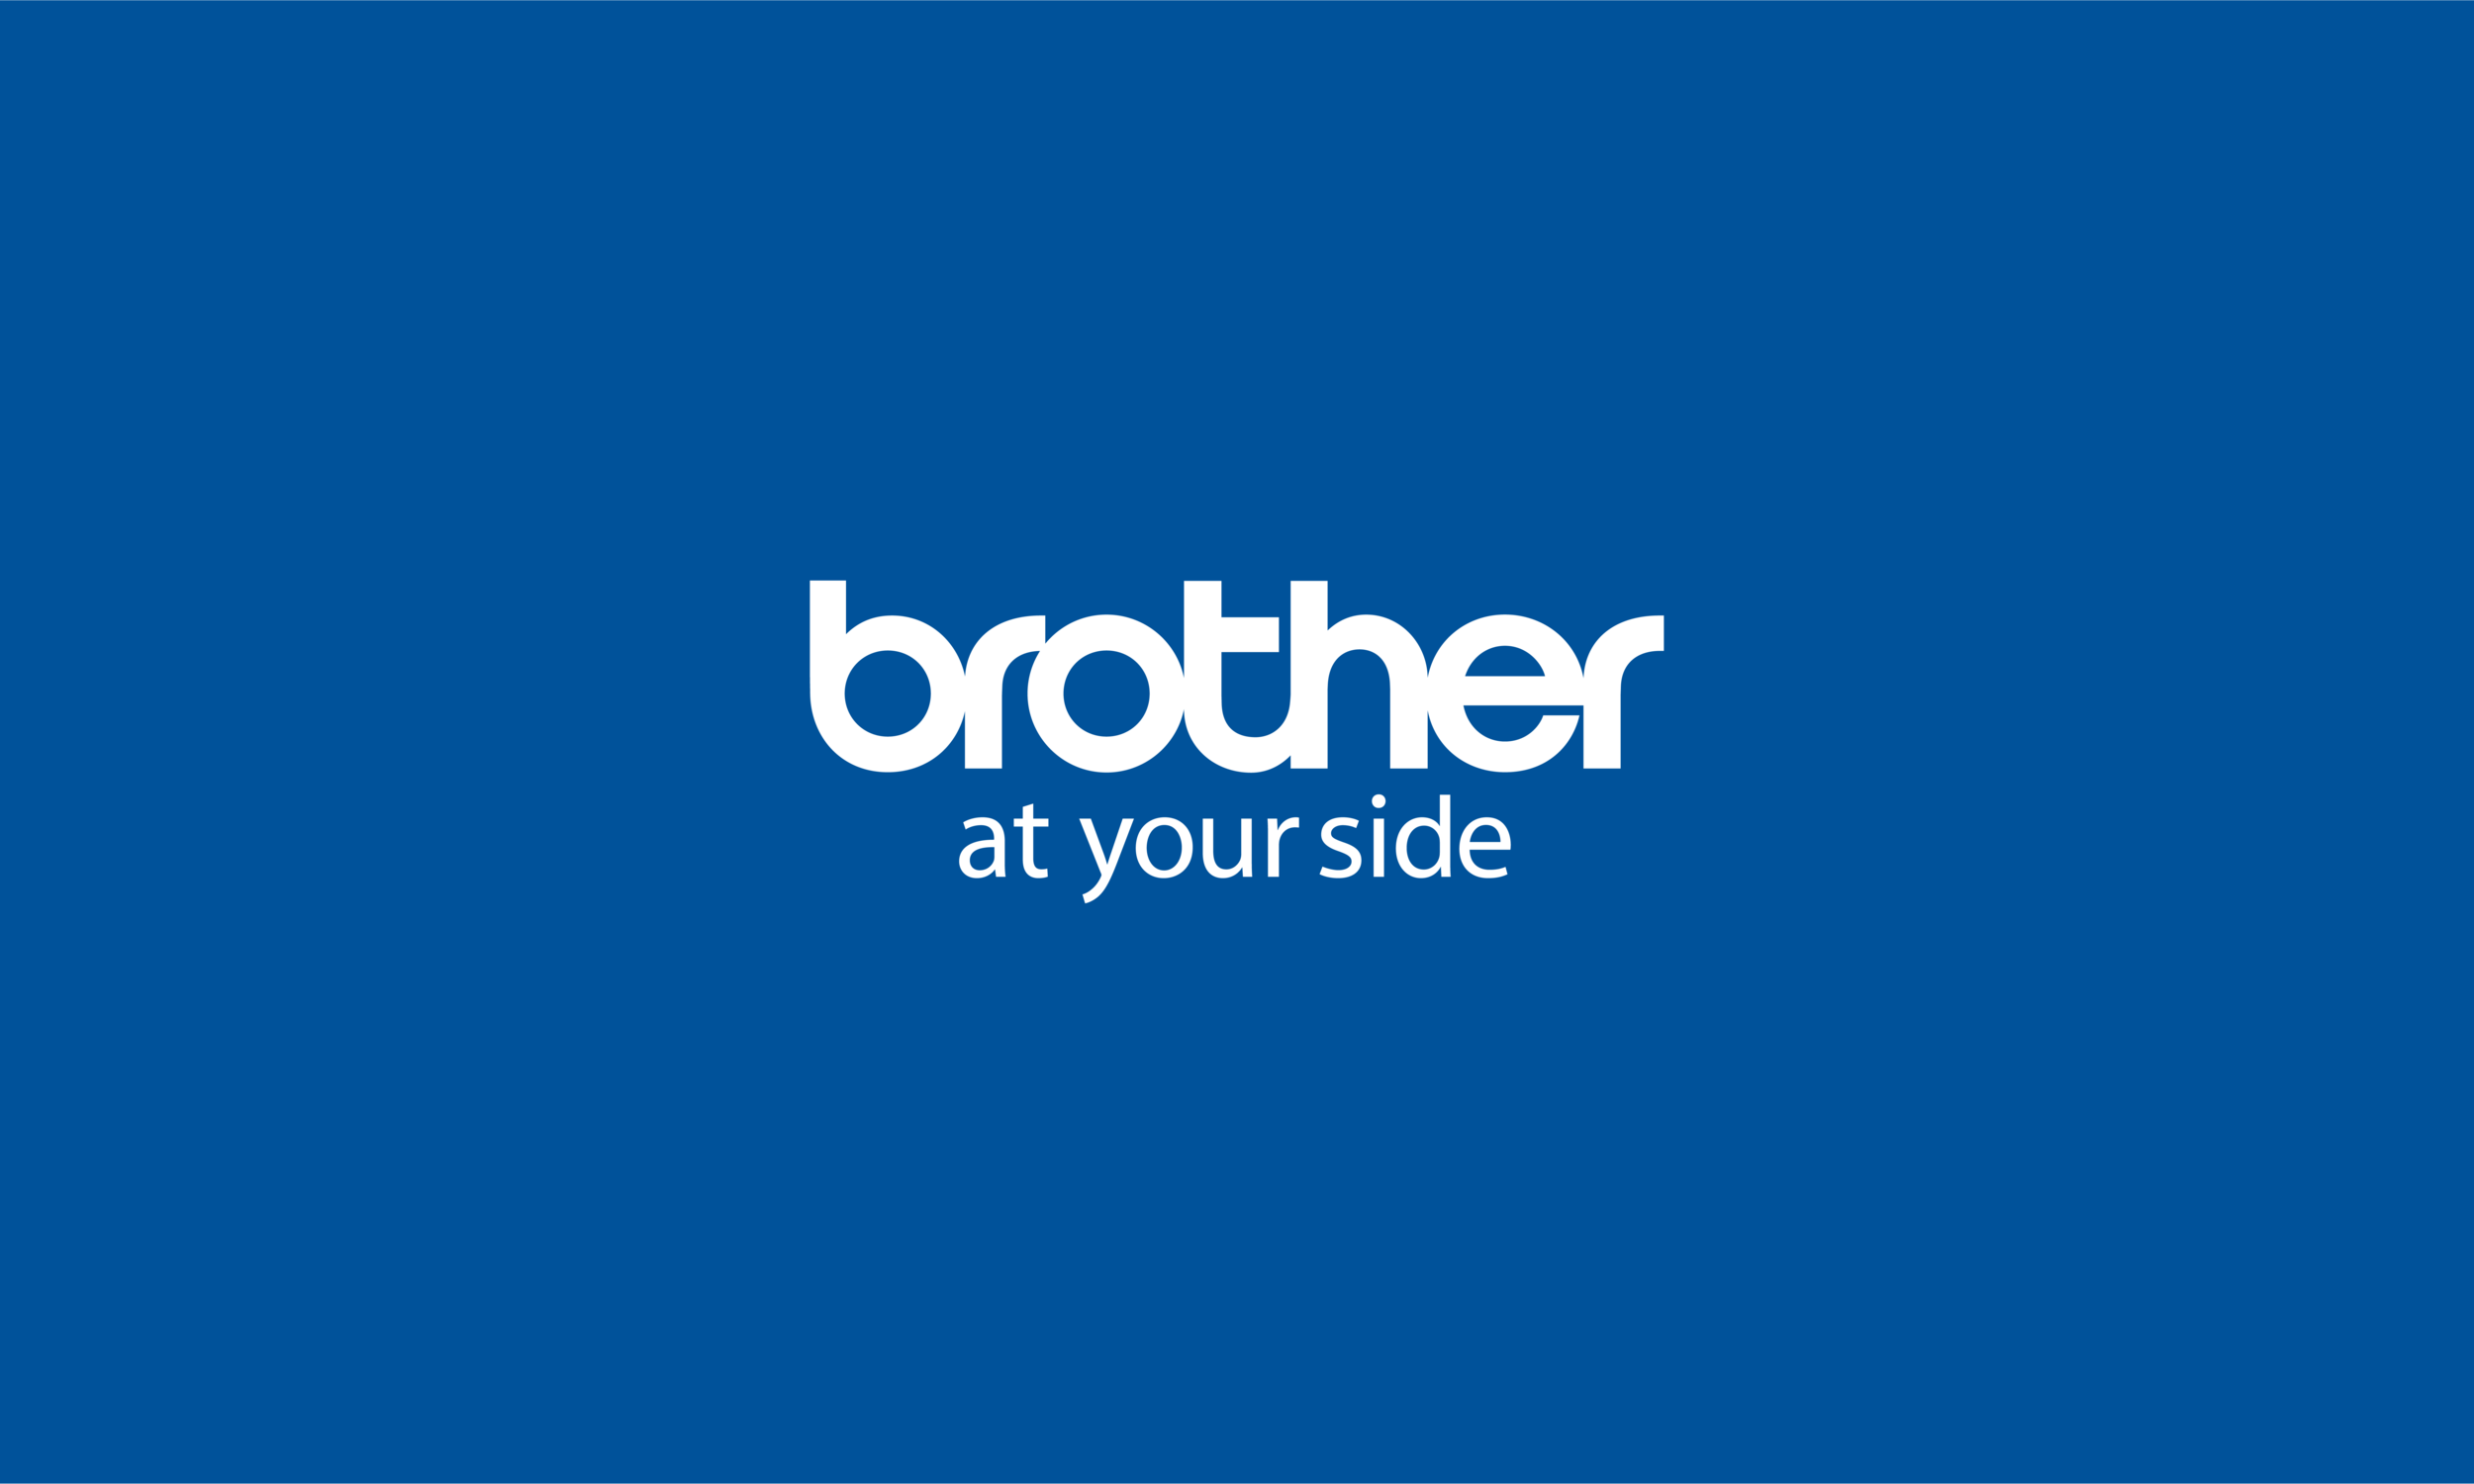 Brother_Cover_Image-01.png